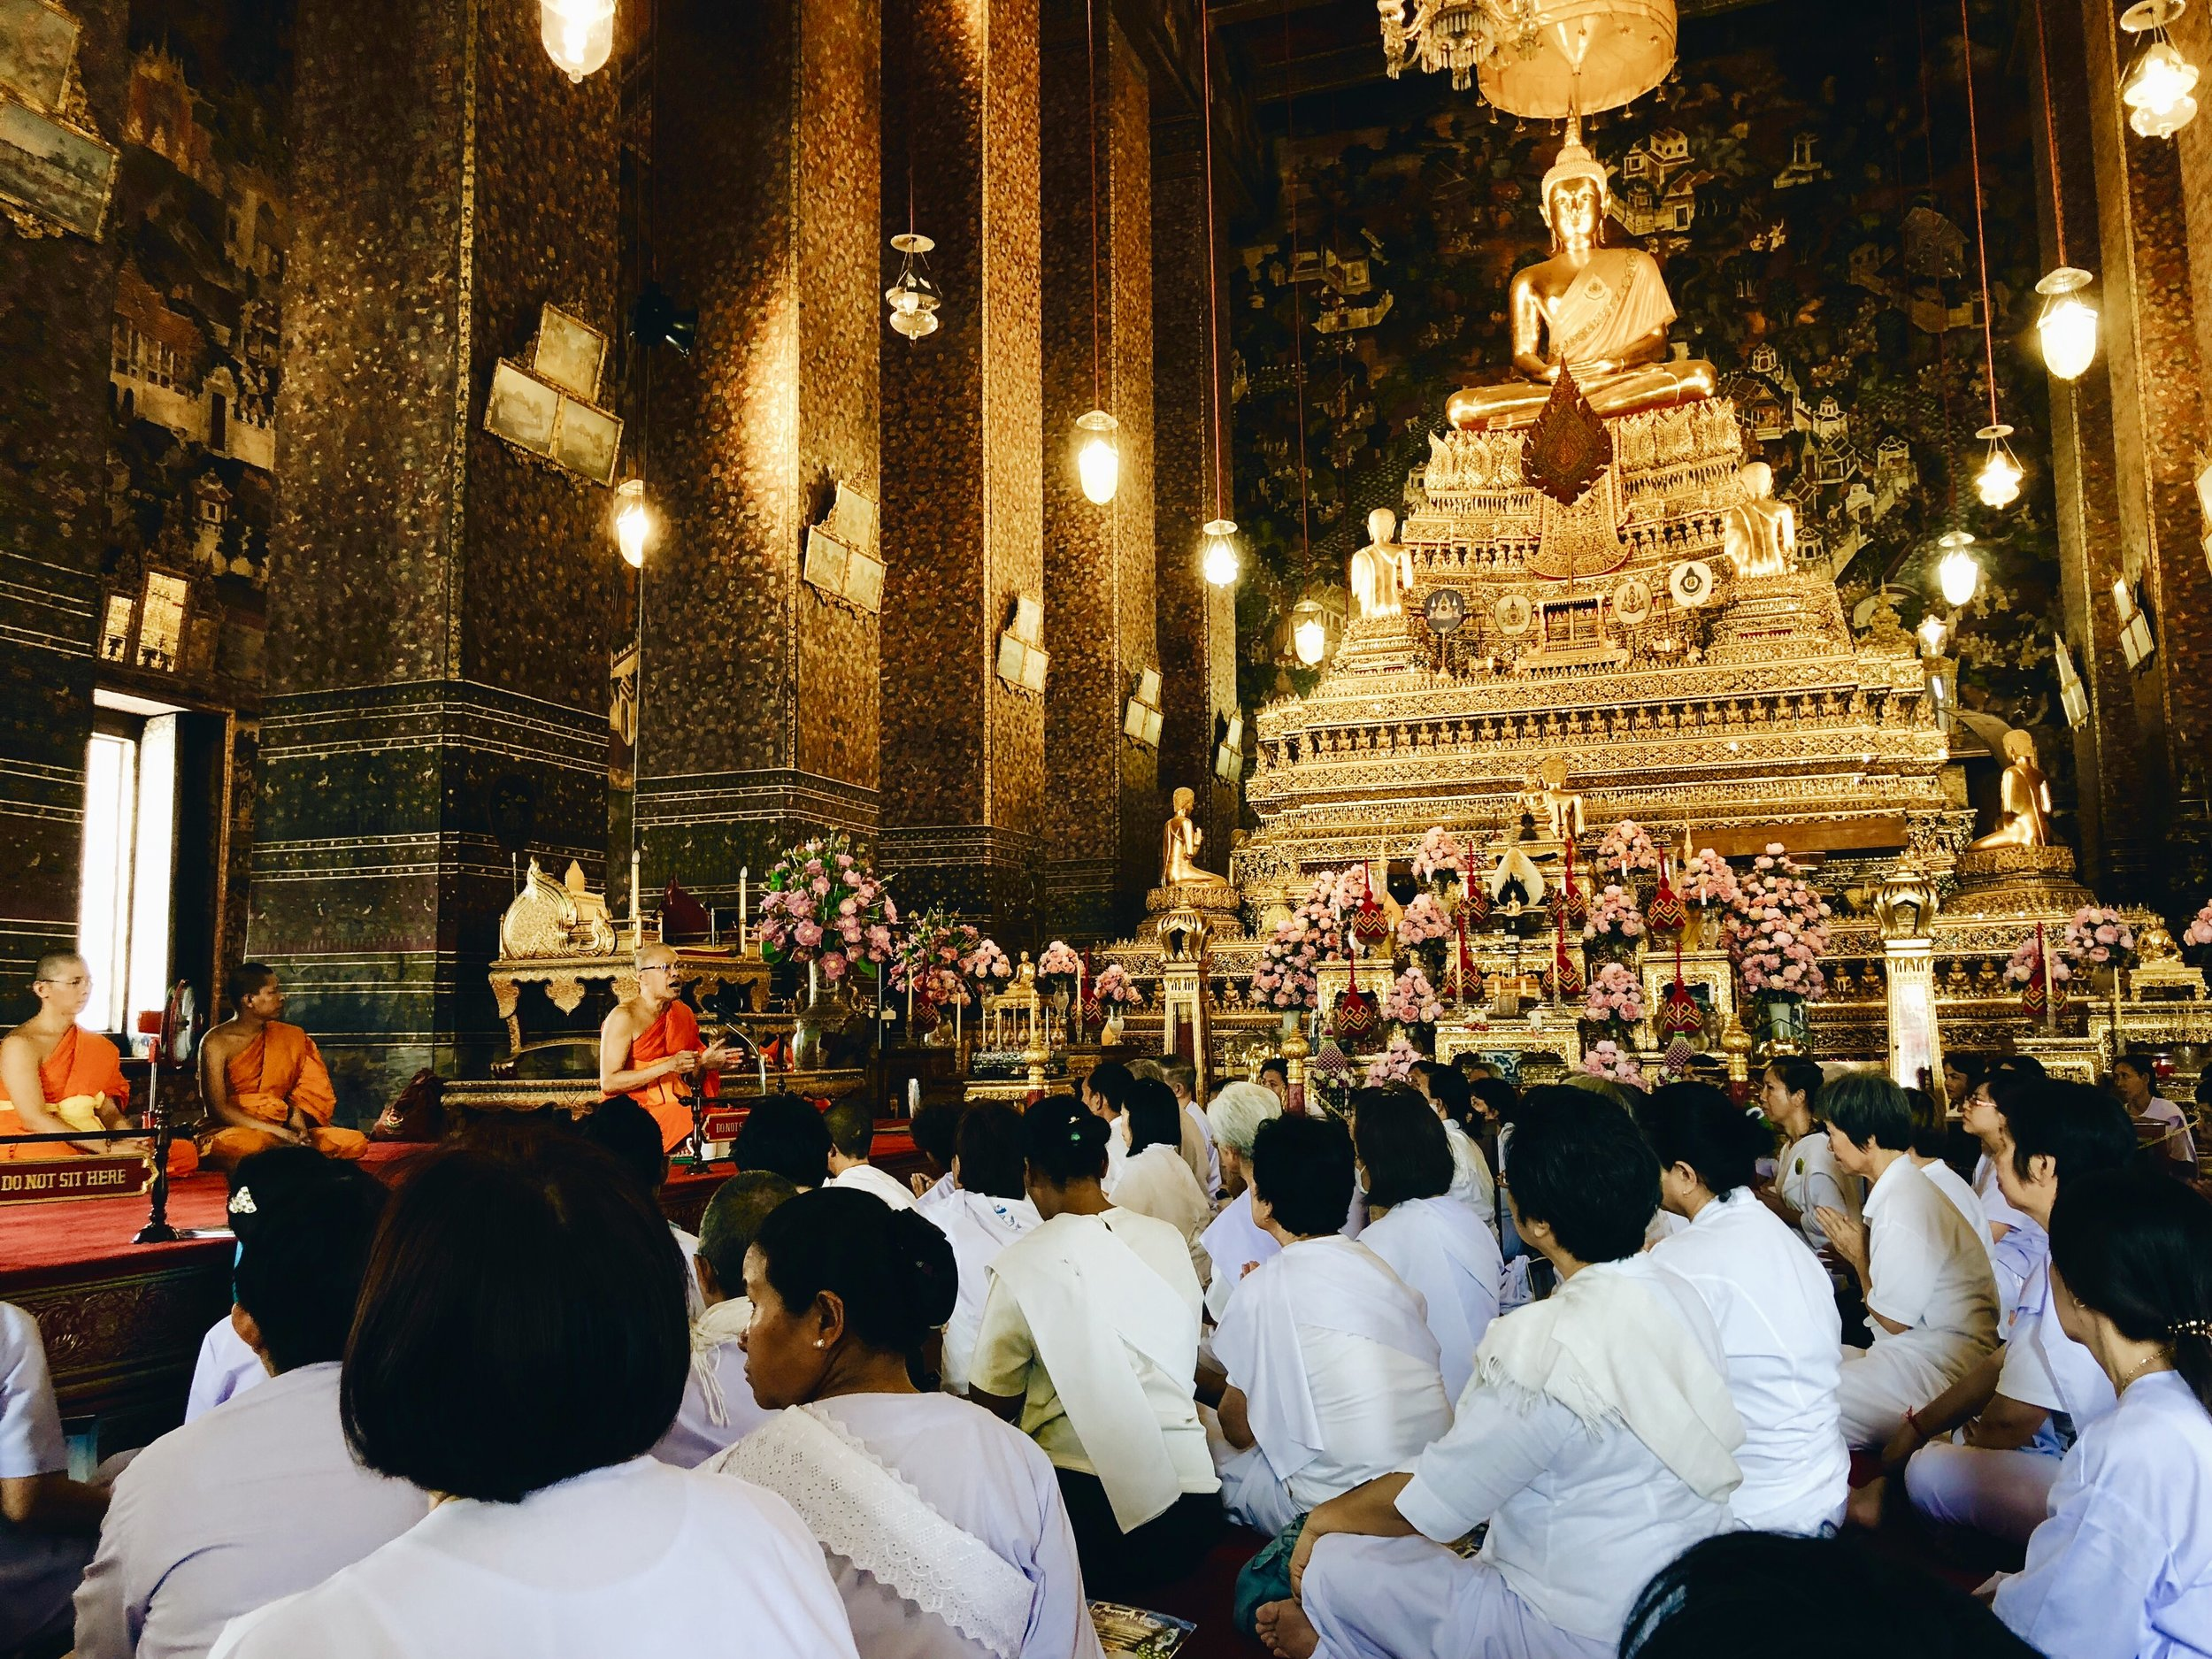 Getting wisdom from a Thai monk